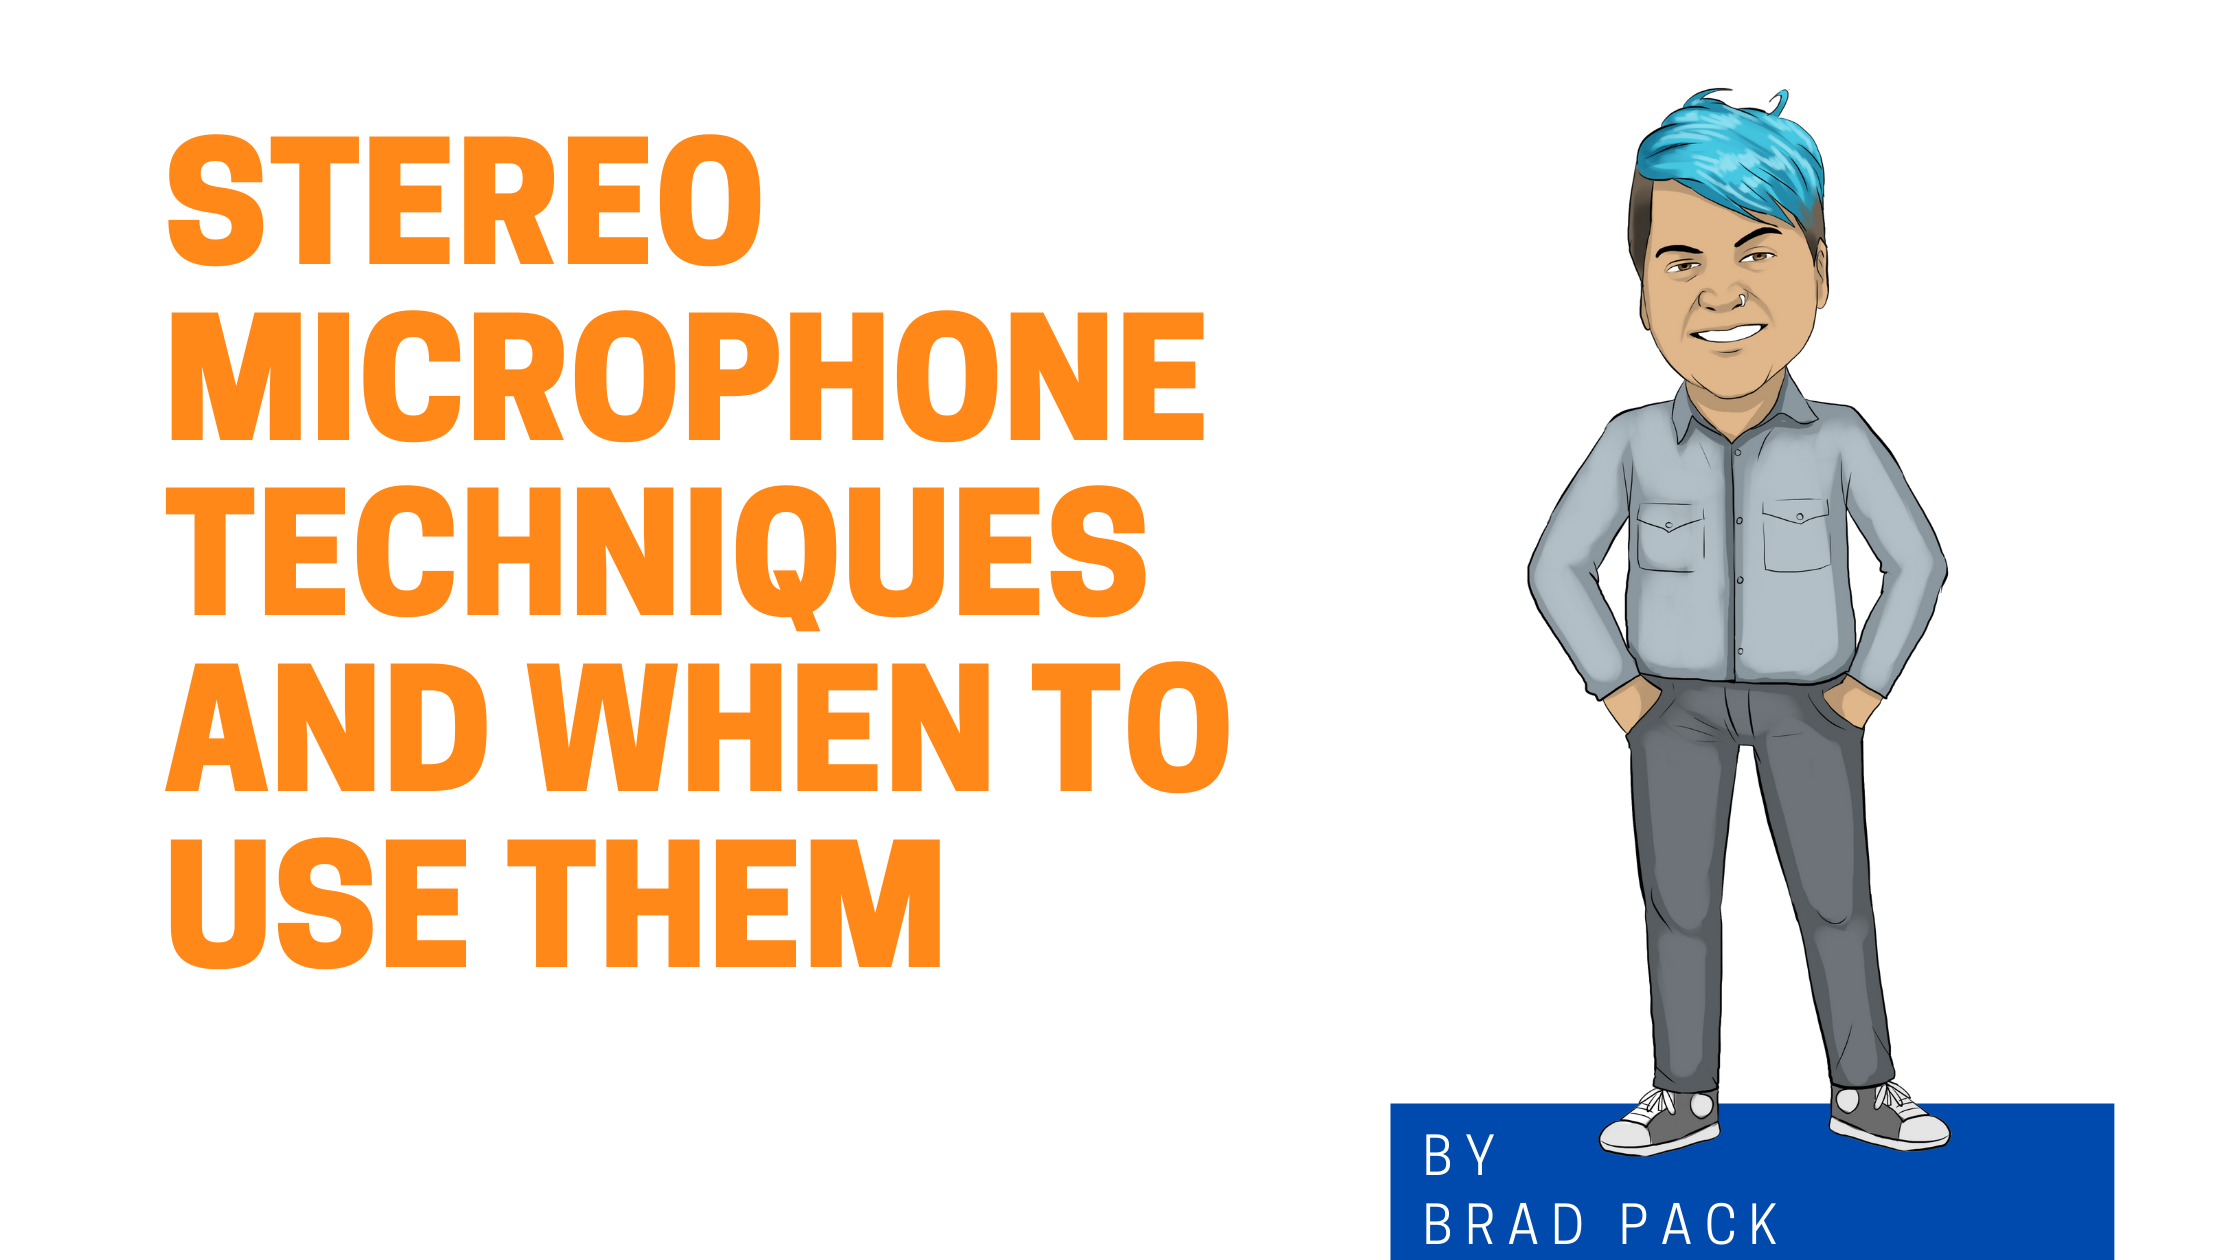 Stereo microphone techniques and when to use them Graphic image